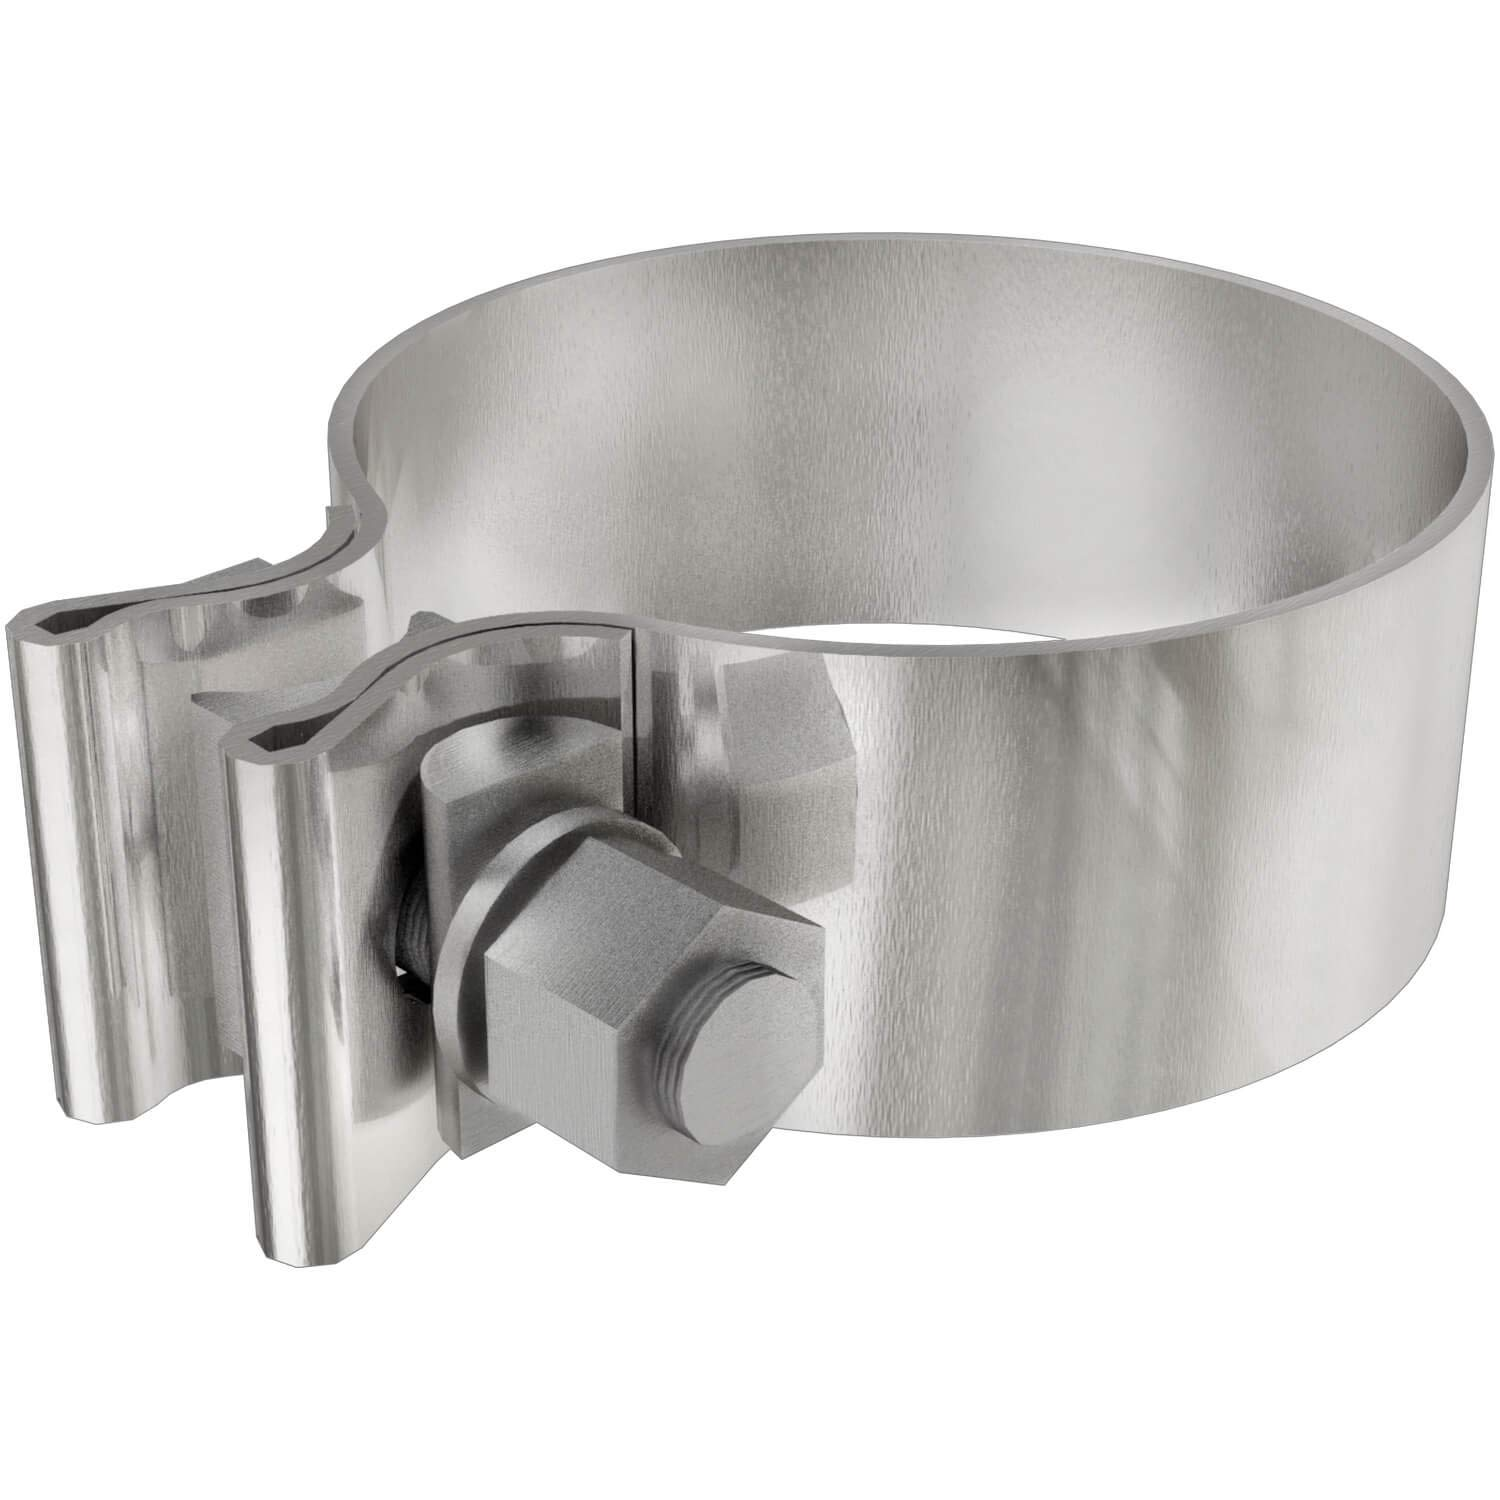 MagnaFlow 10162 Exhaust Clamp